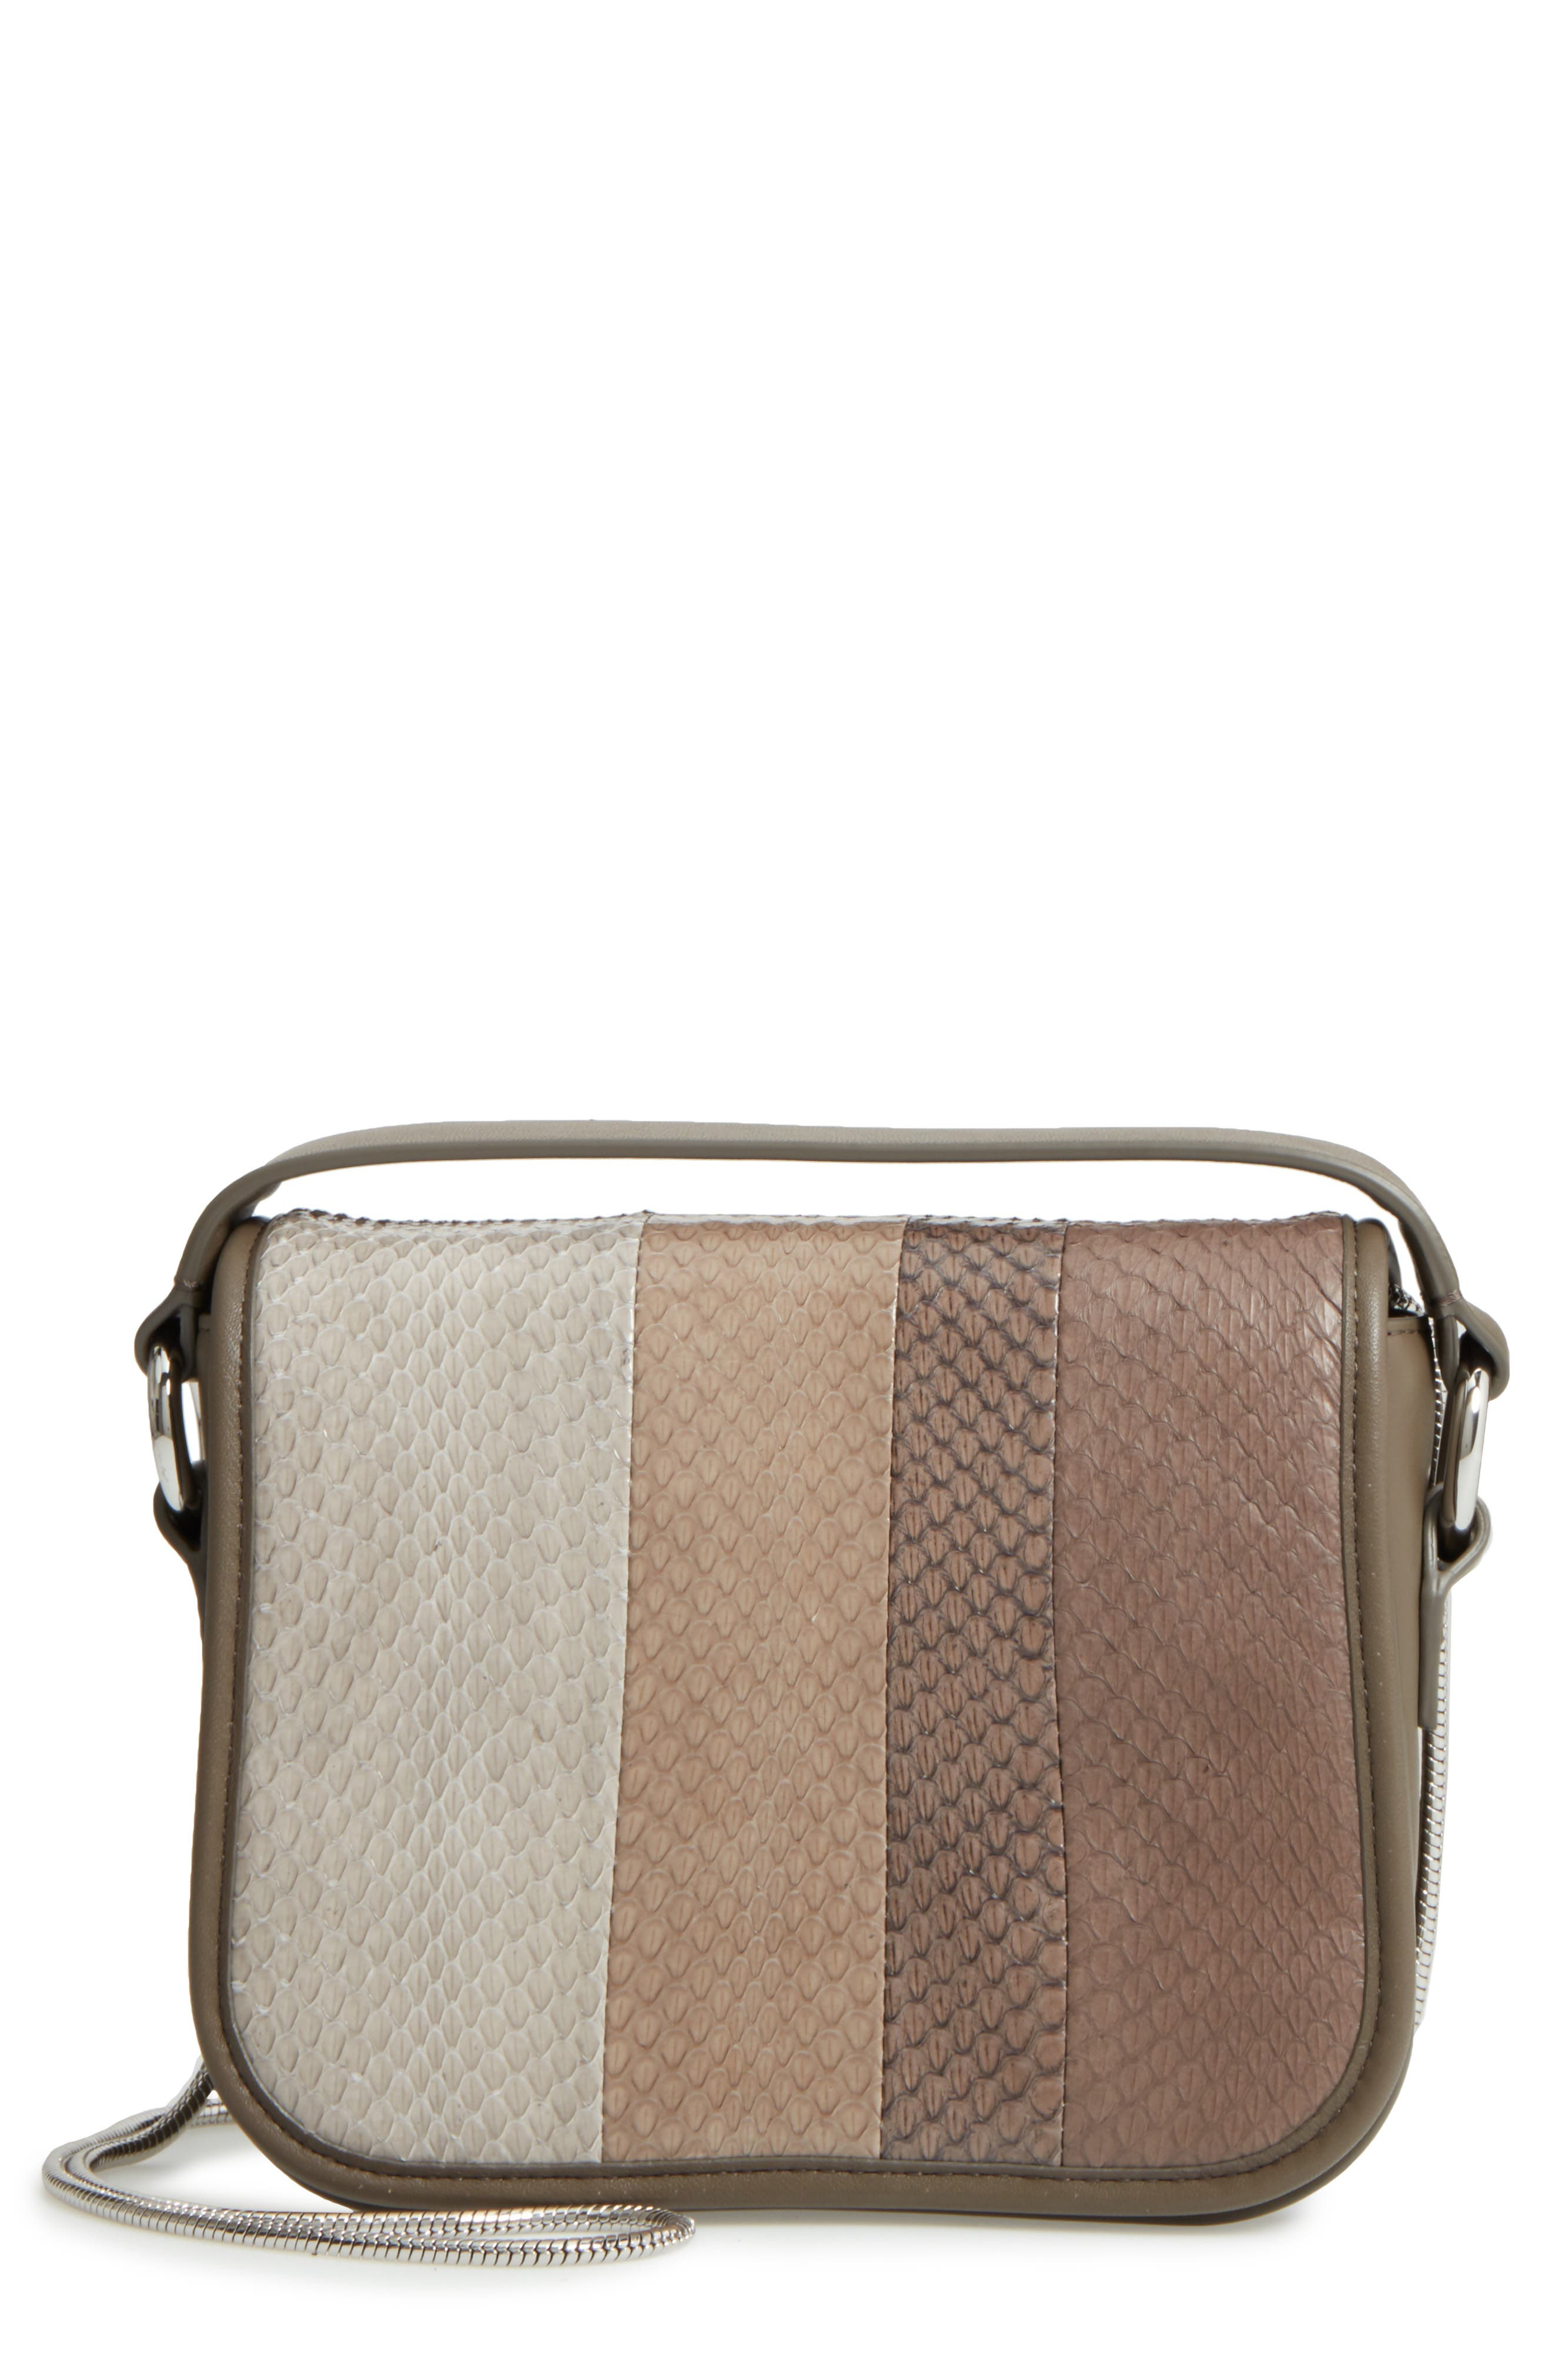 Ikuya Leather & Genuine Snakeskin Clutch,                             Main thumbnail 1, color,                             031